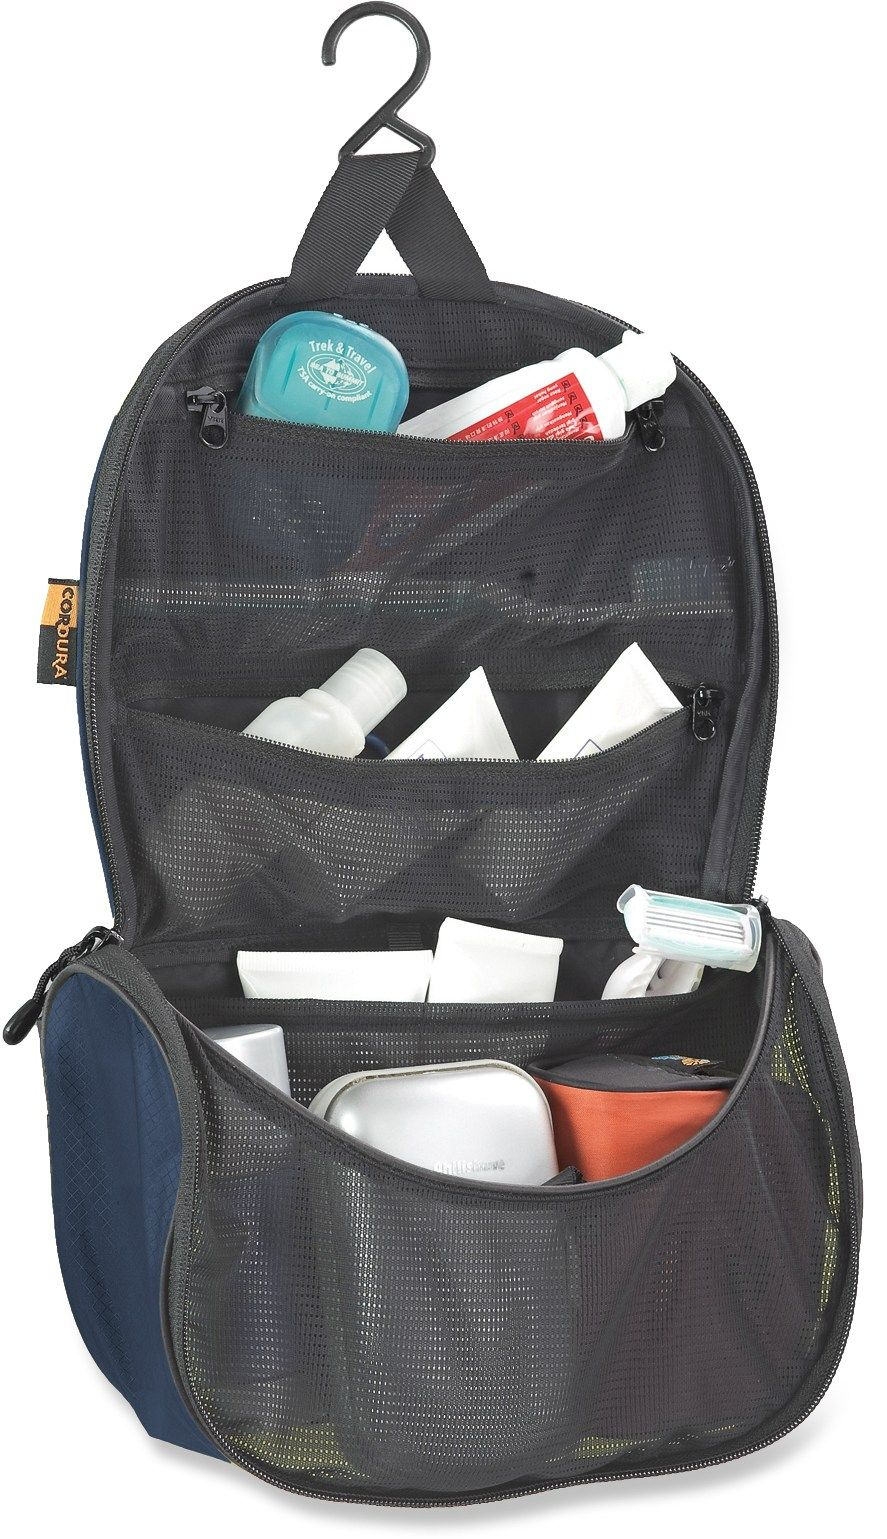 Sea to Summit Travelling Light Hanging Toiletry Bag - Small - Free Shipping  at REI.com 604877f9e1f42